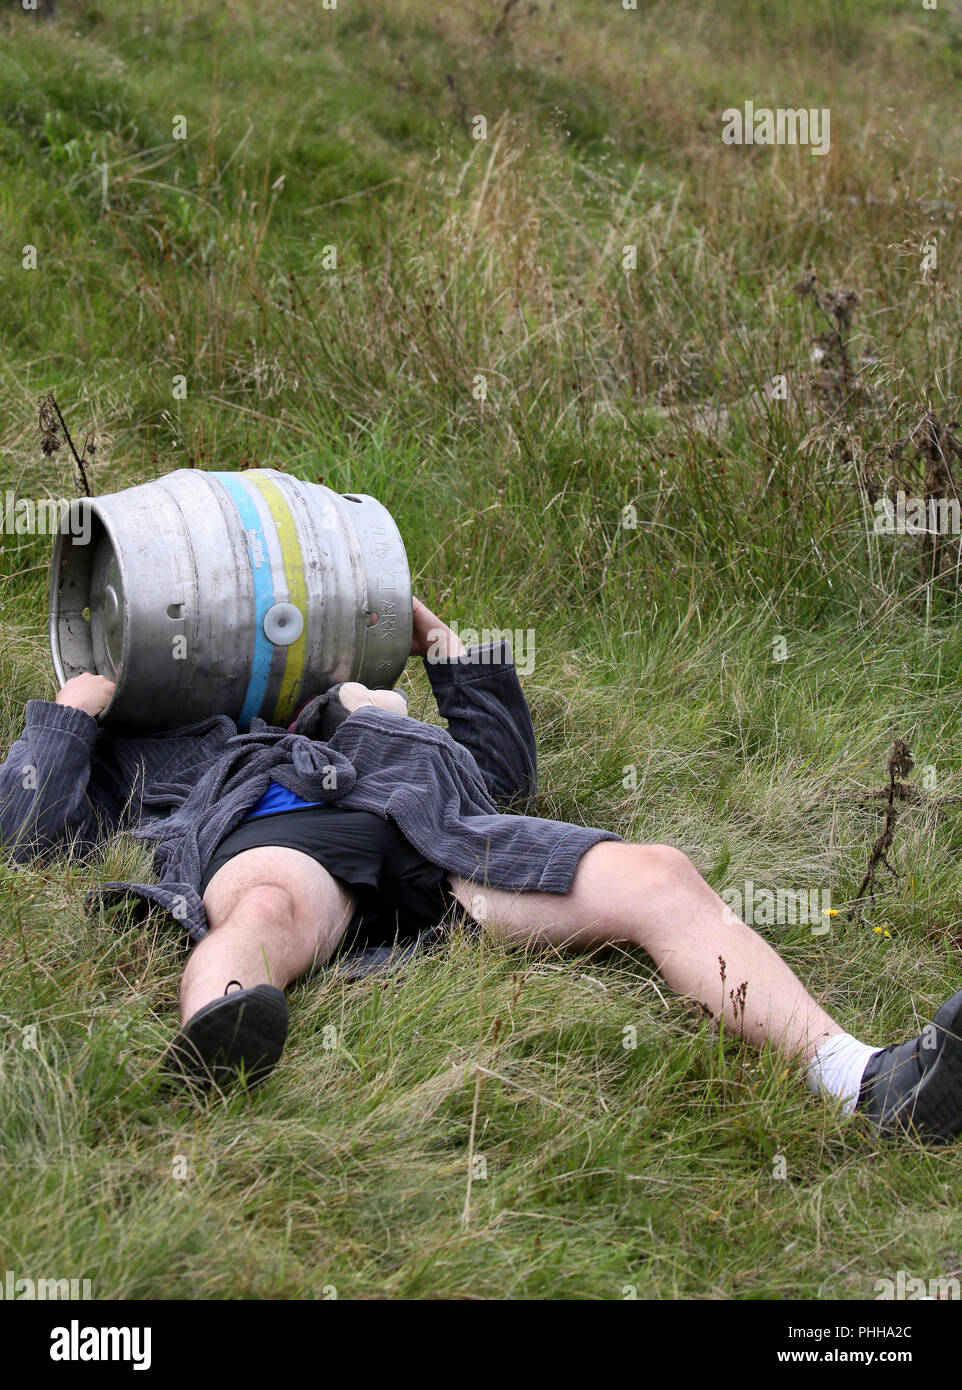 Littleborough, Manchester, UK. 1st September, 2018. The first ever World Beer Keg Carrying championships organised by Brian Gumbley and the 'Always with a smile' foundation.  The competition involves a three quarter mile sprint to pick up a beer keg weighing 50kg and proceeding to carry it up Blackstone edge to a finish point near the White House.  Littleborough, 1st September, 2018 (C)Barbara Cook/Alamy Live News - Stock Image